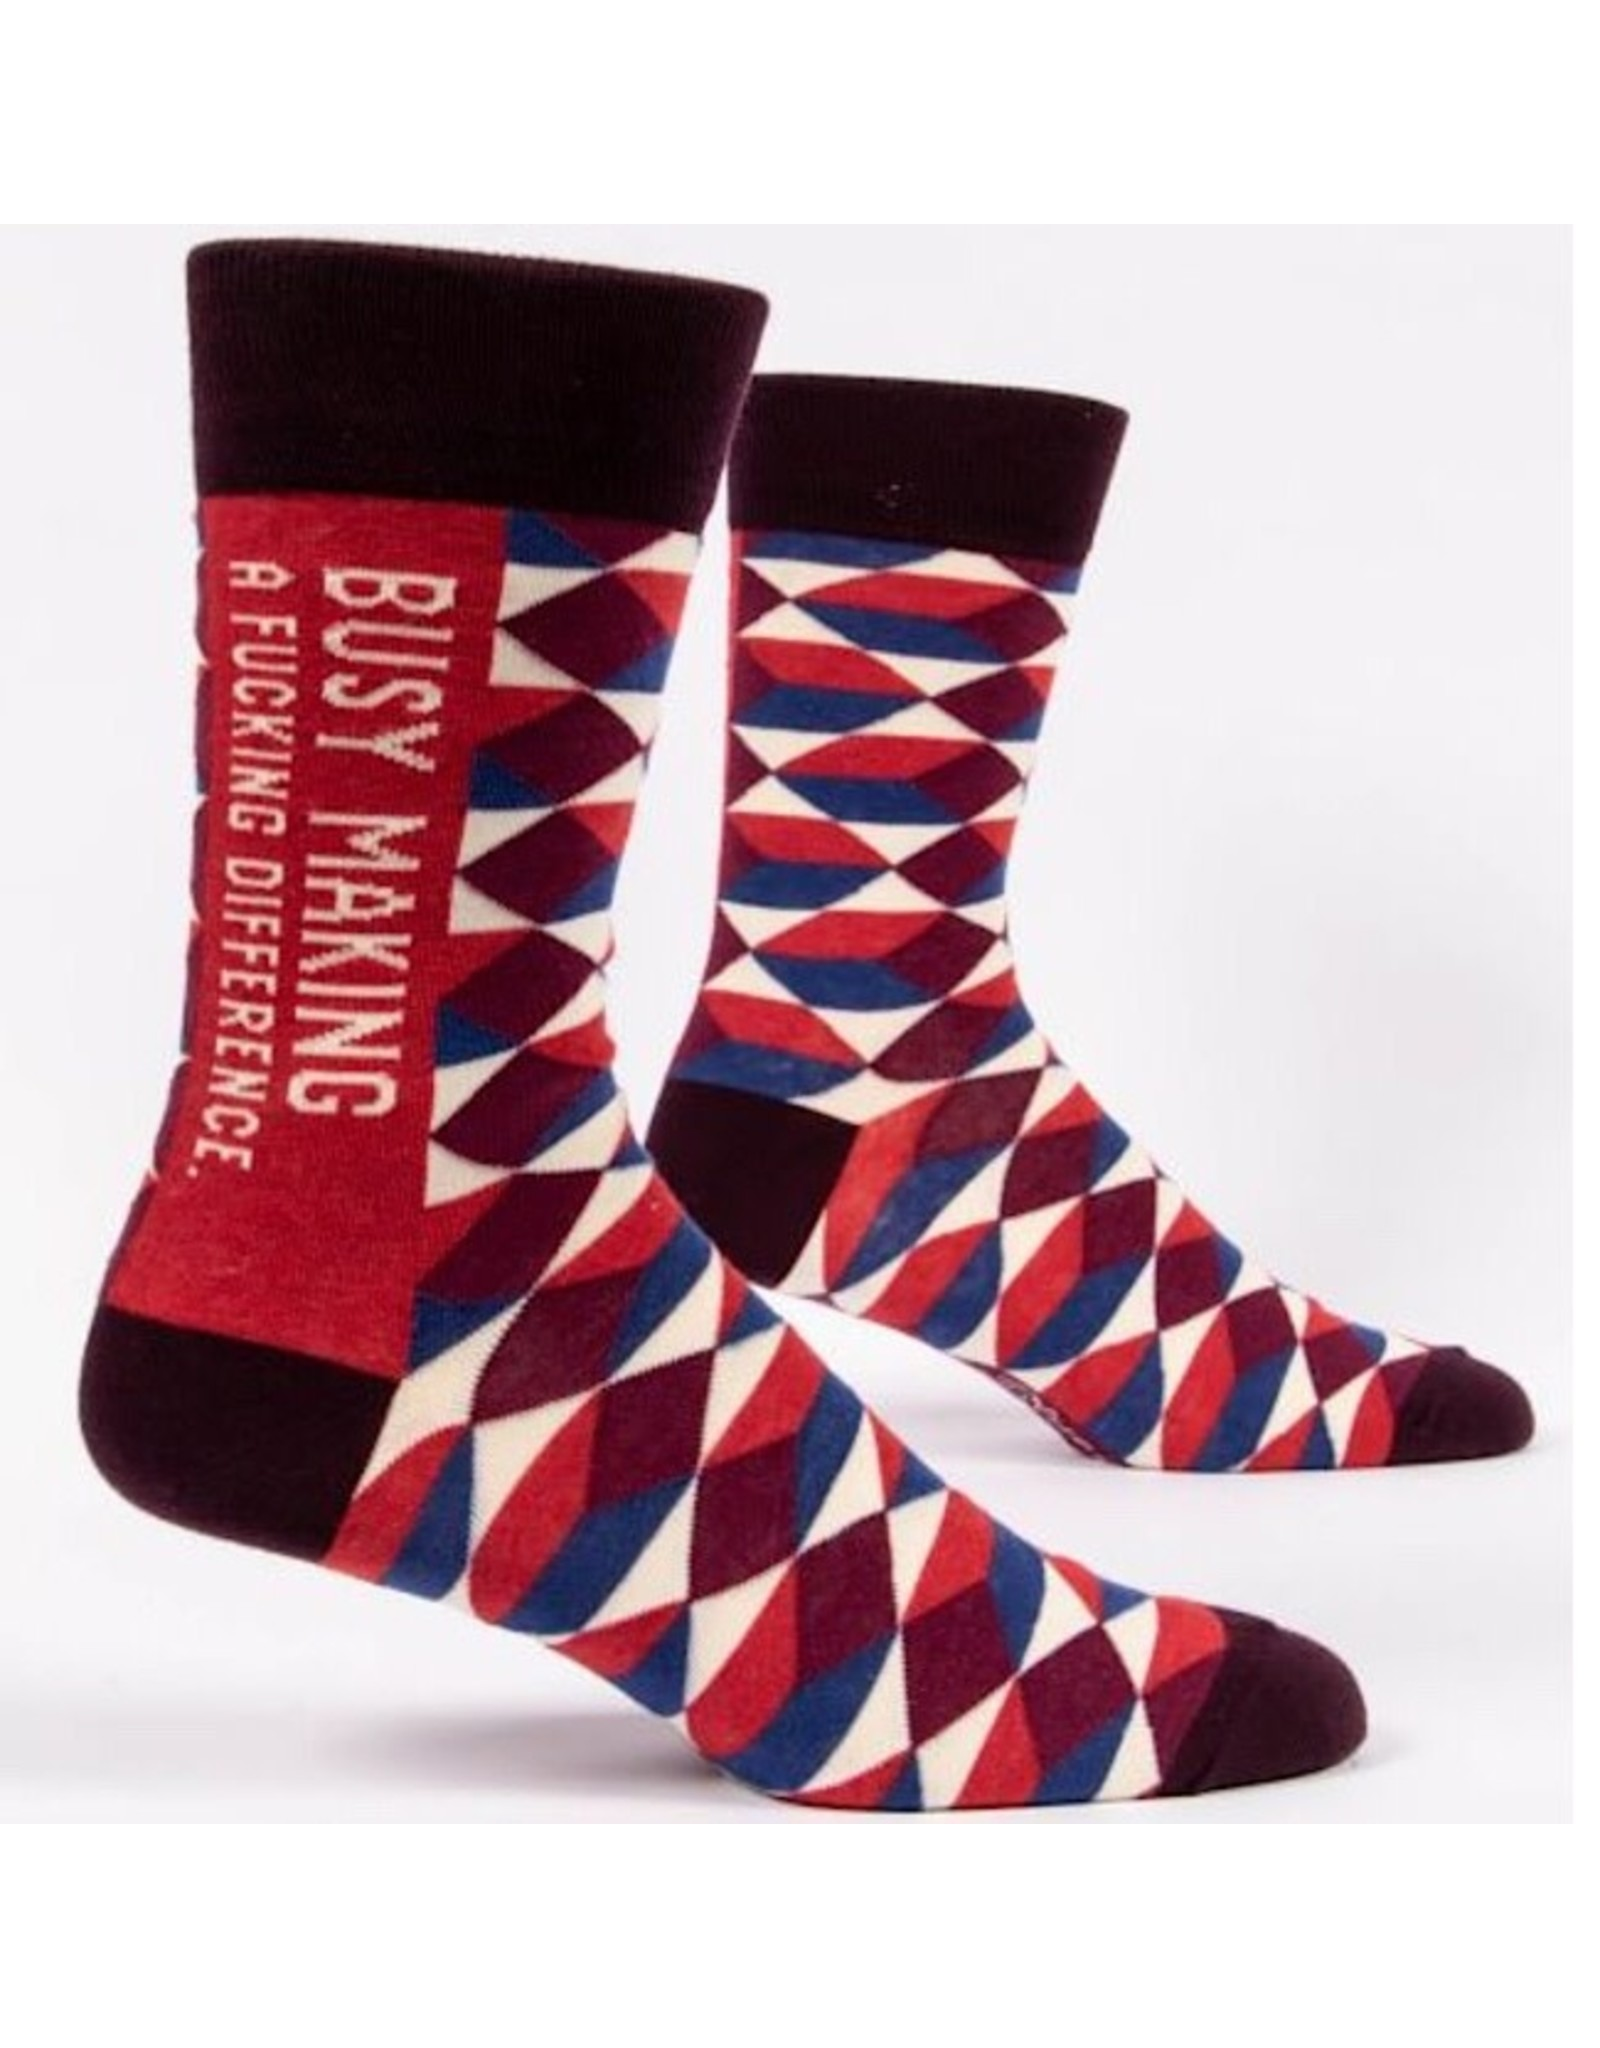 Socks (Mens)  - Making a Difference